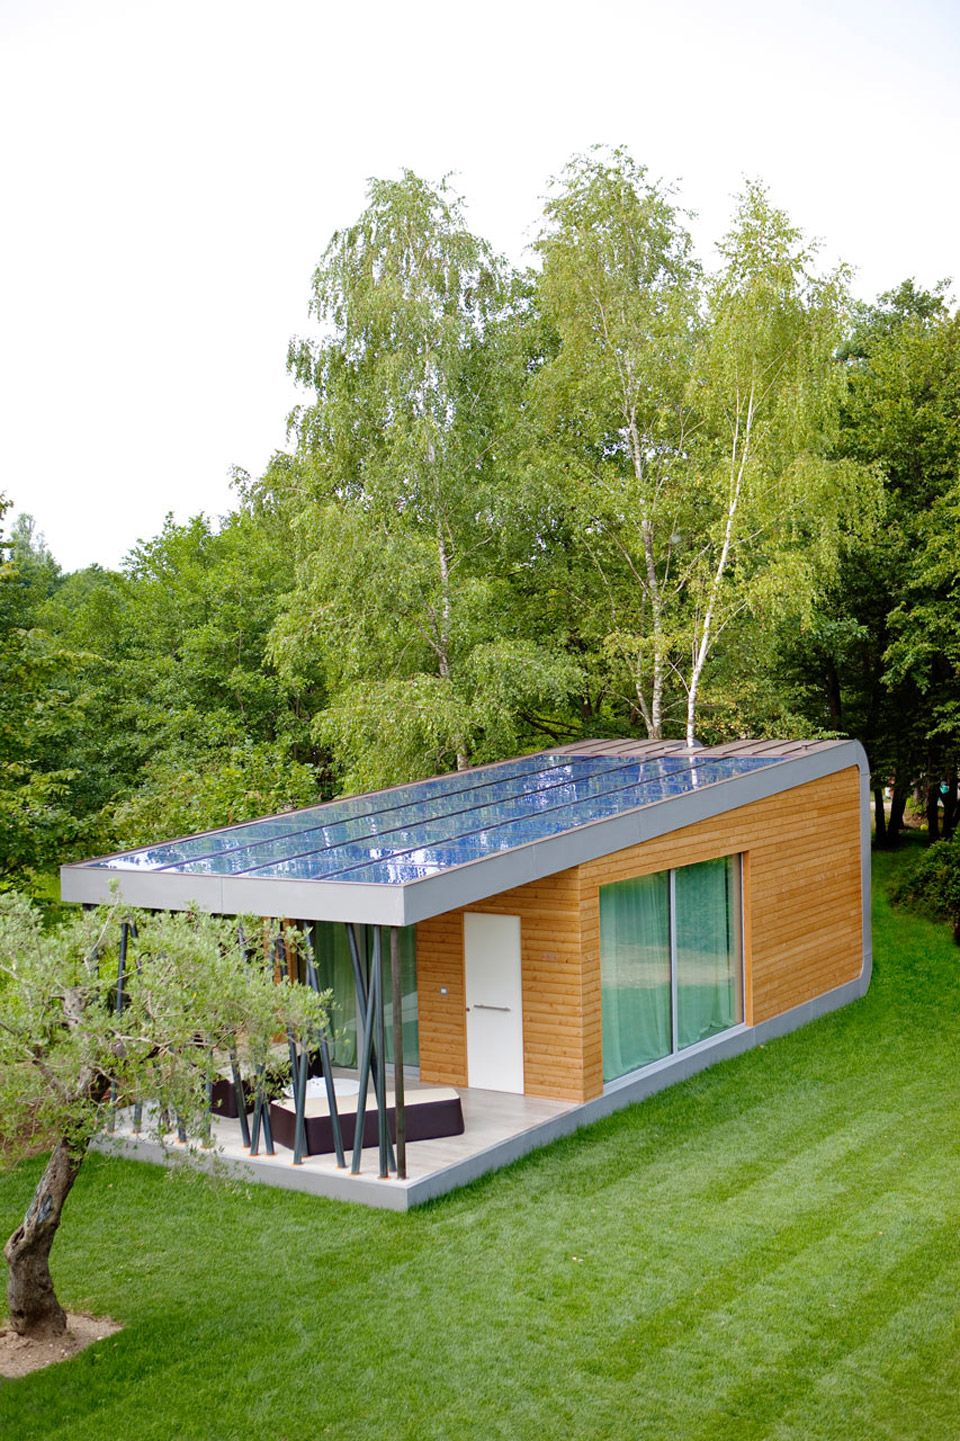 Green Zero   Small House Swoon   Maison container, Chalet de ...